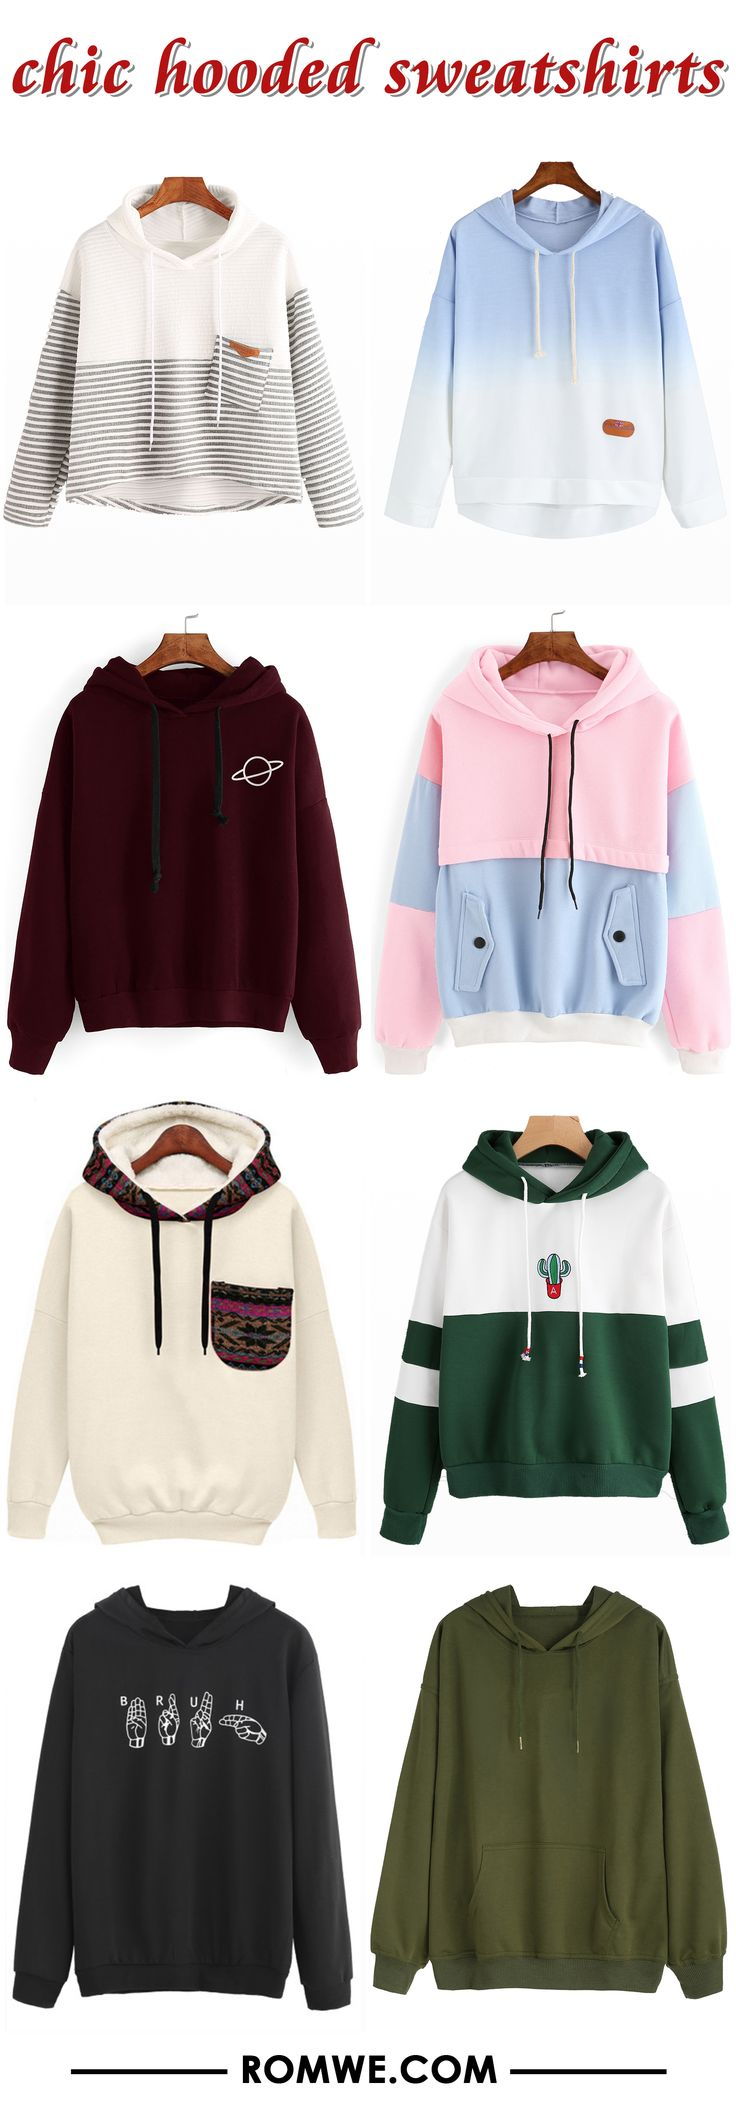 hooded sweatshirts 2017 - romwe.com